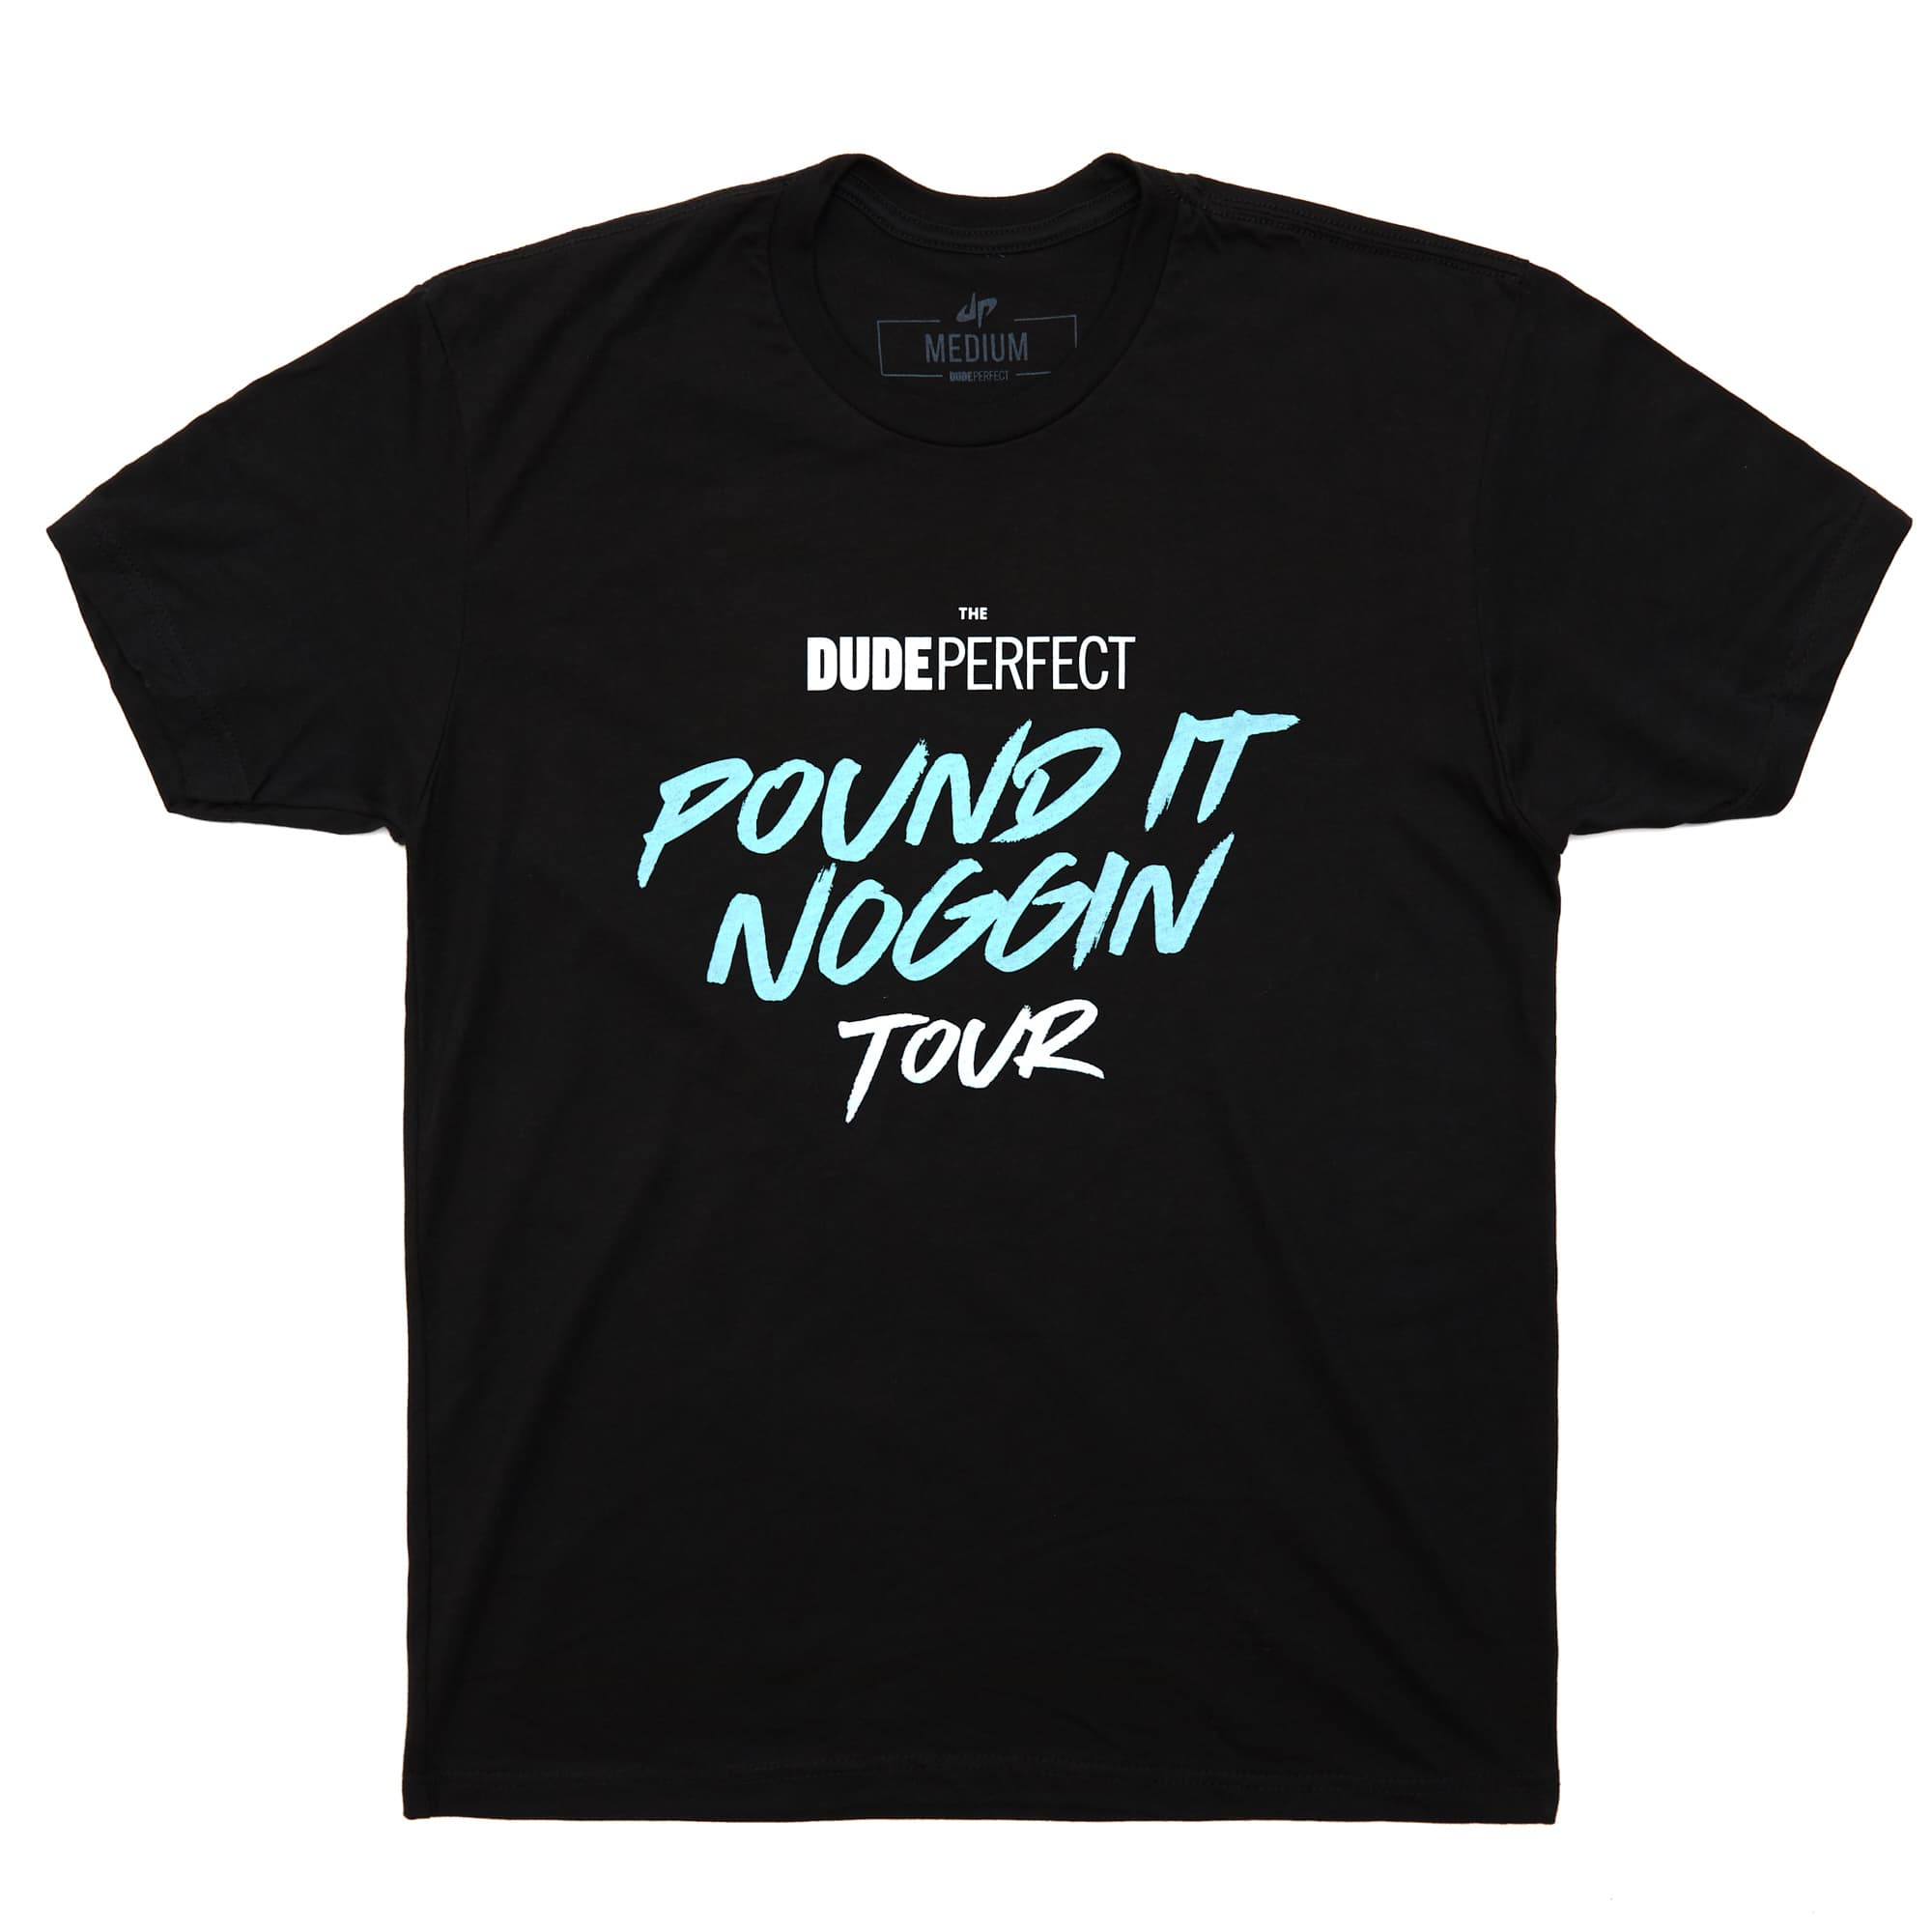 Official Pound It Noggin Tour 2019 Tee w/ Tour Dates